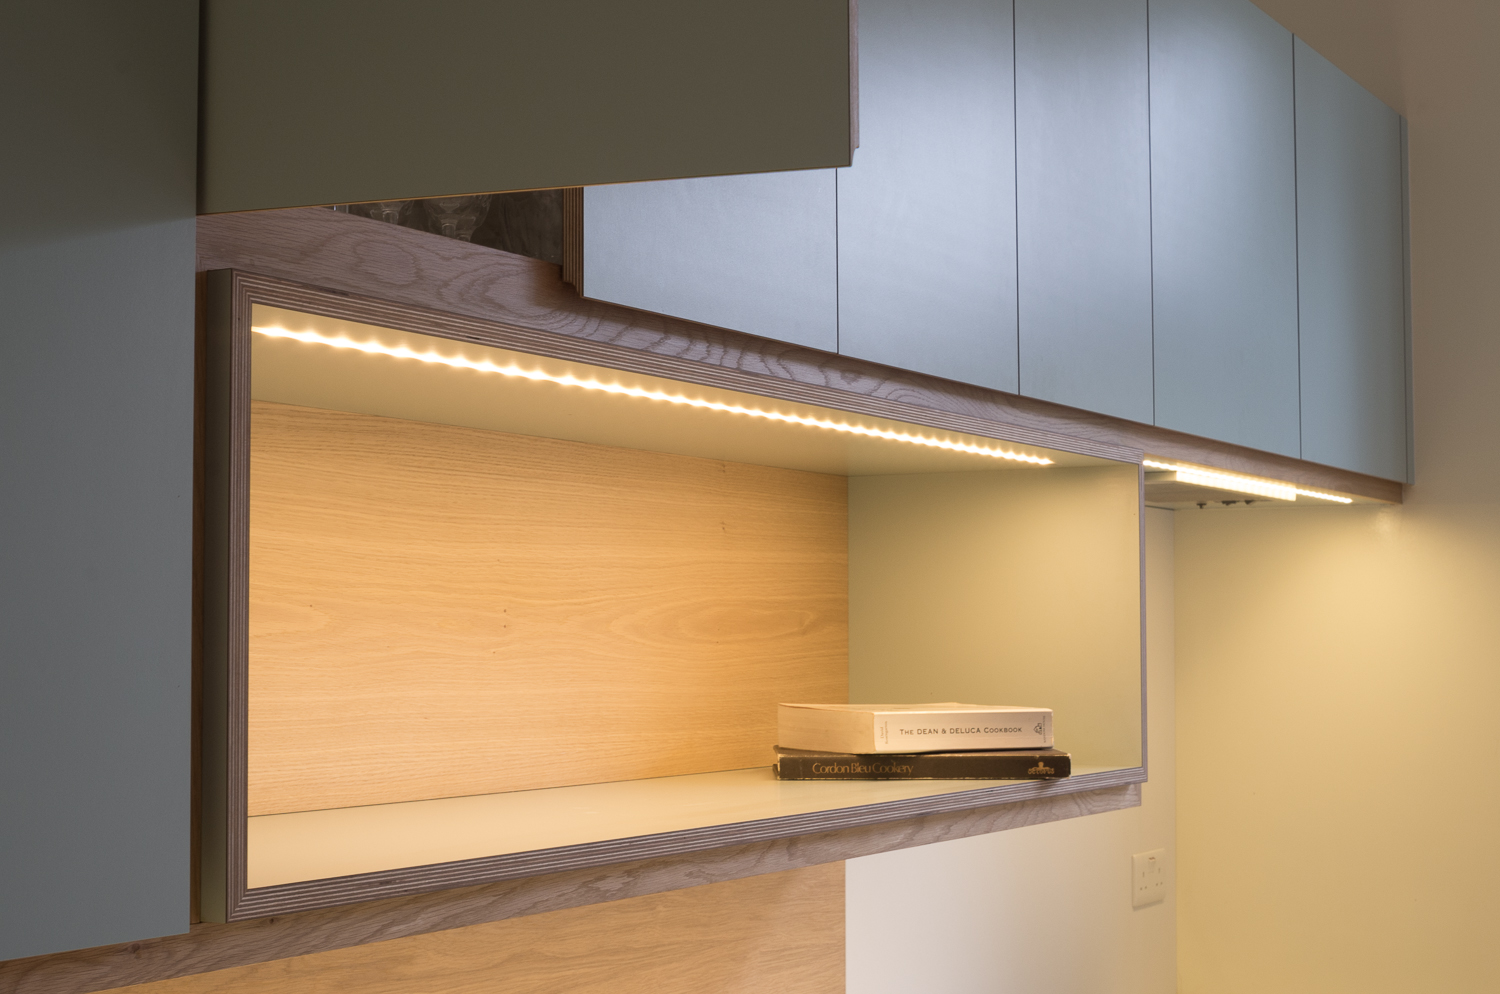 Copy of Bespoke kitchen display area with mitred oak trim.